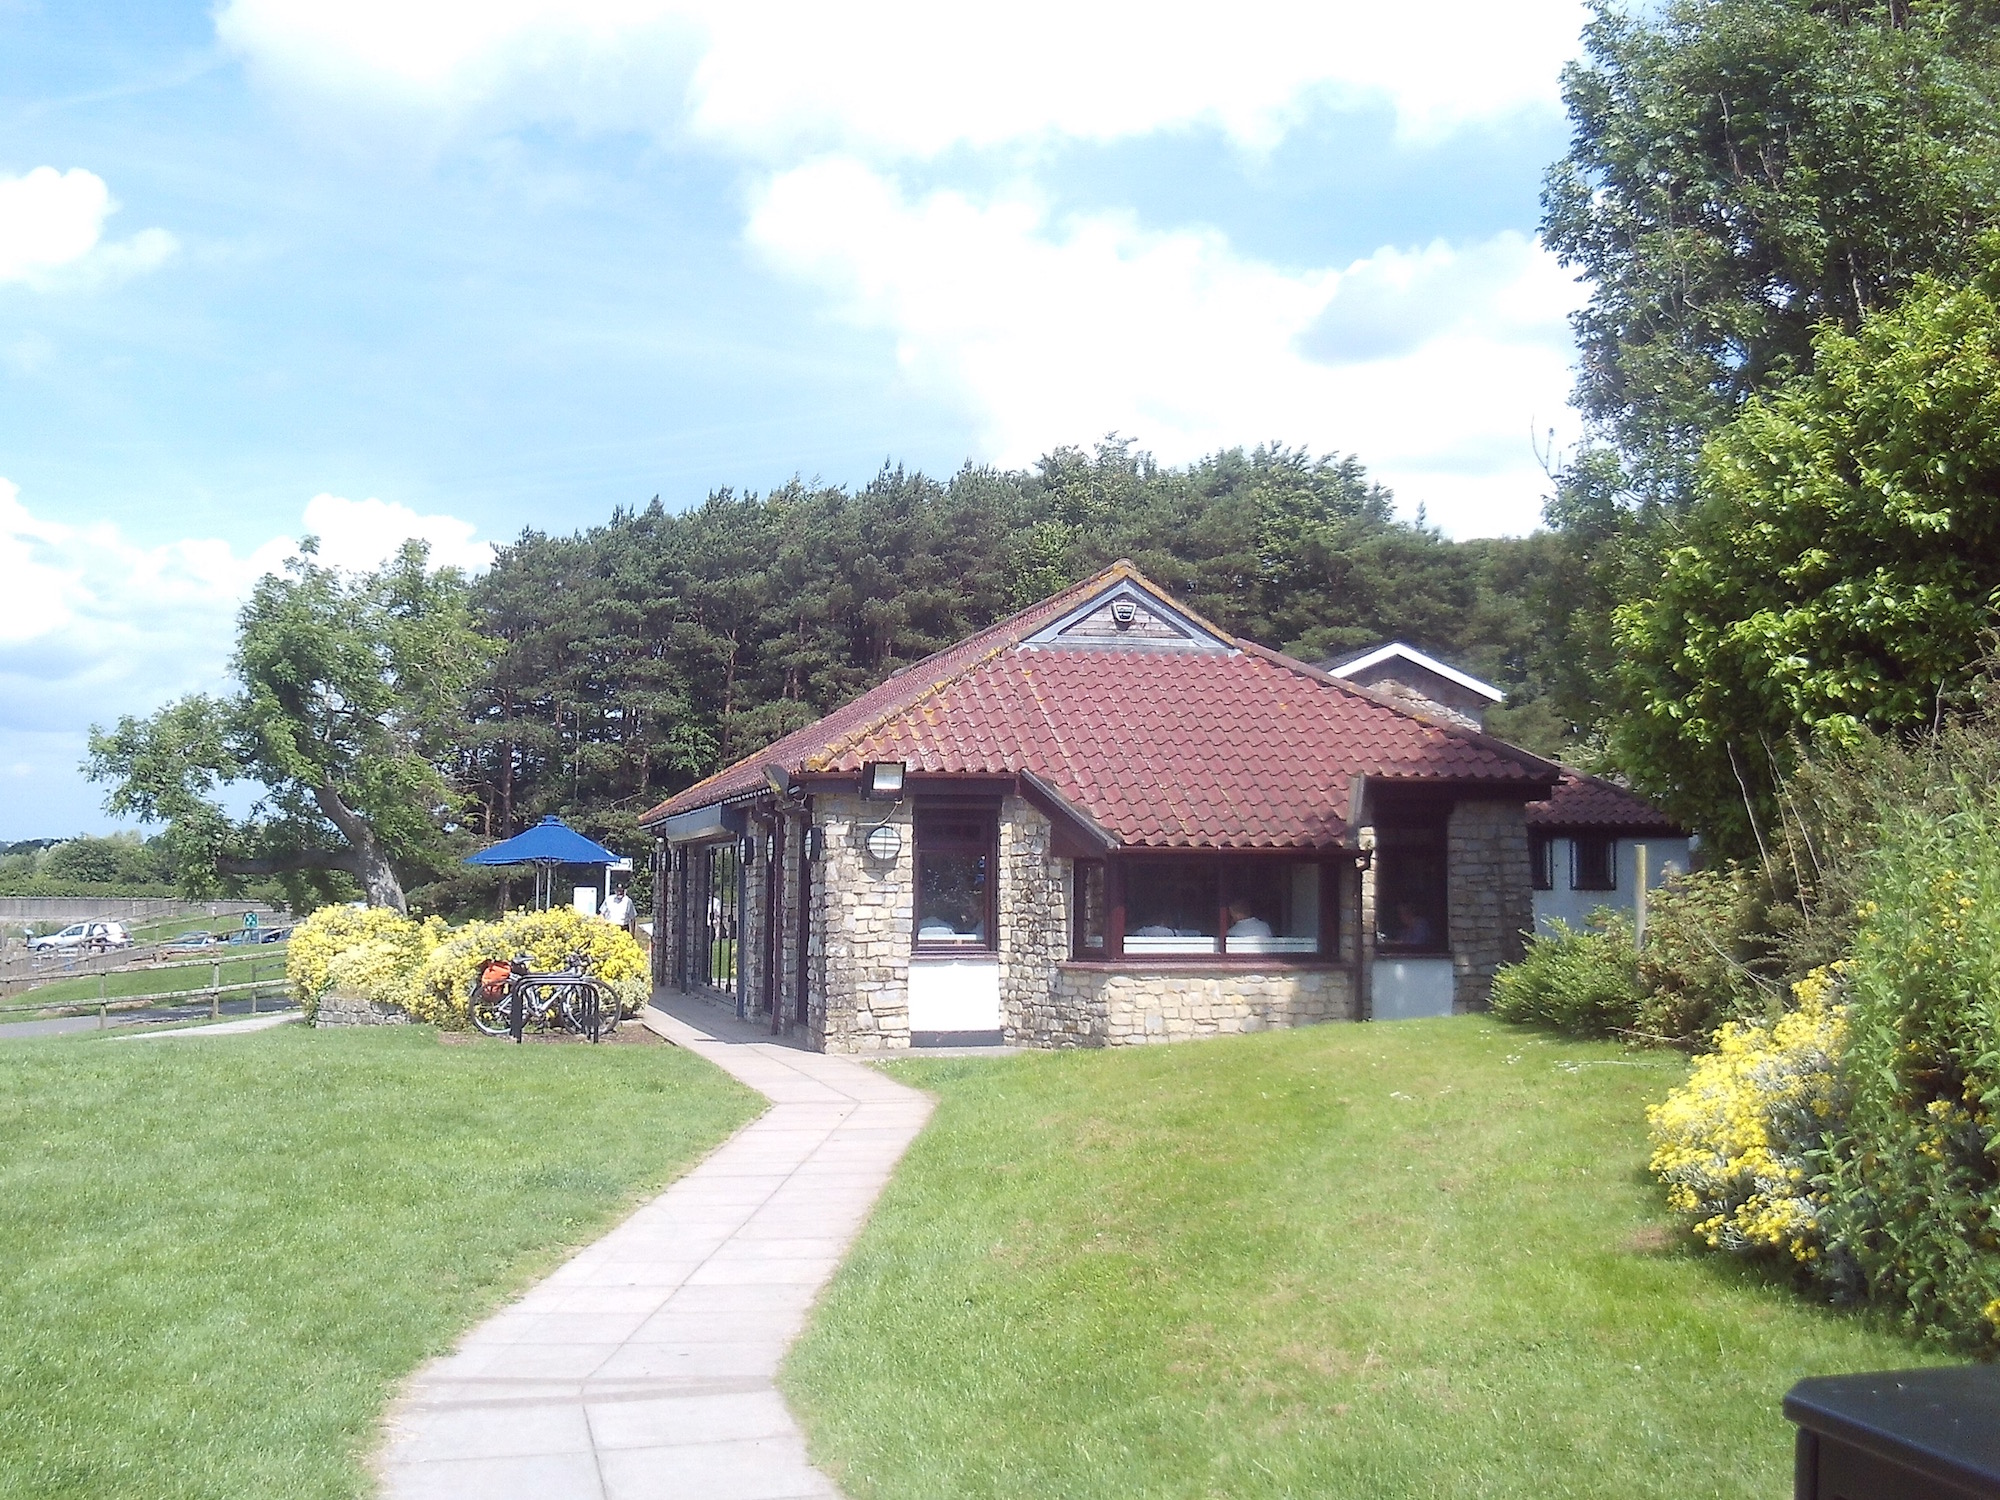 Tearoom at Chew Valley Lake